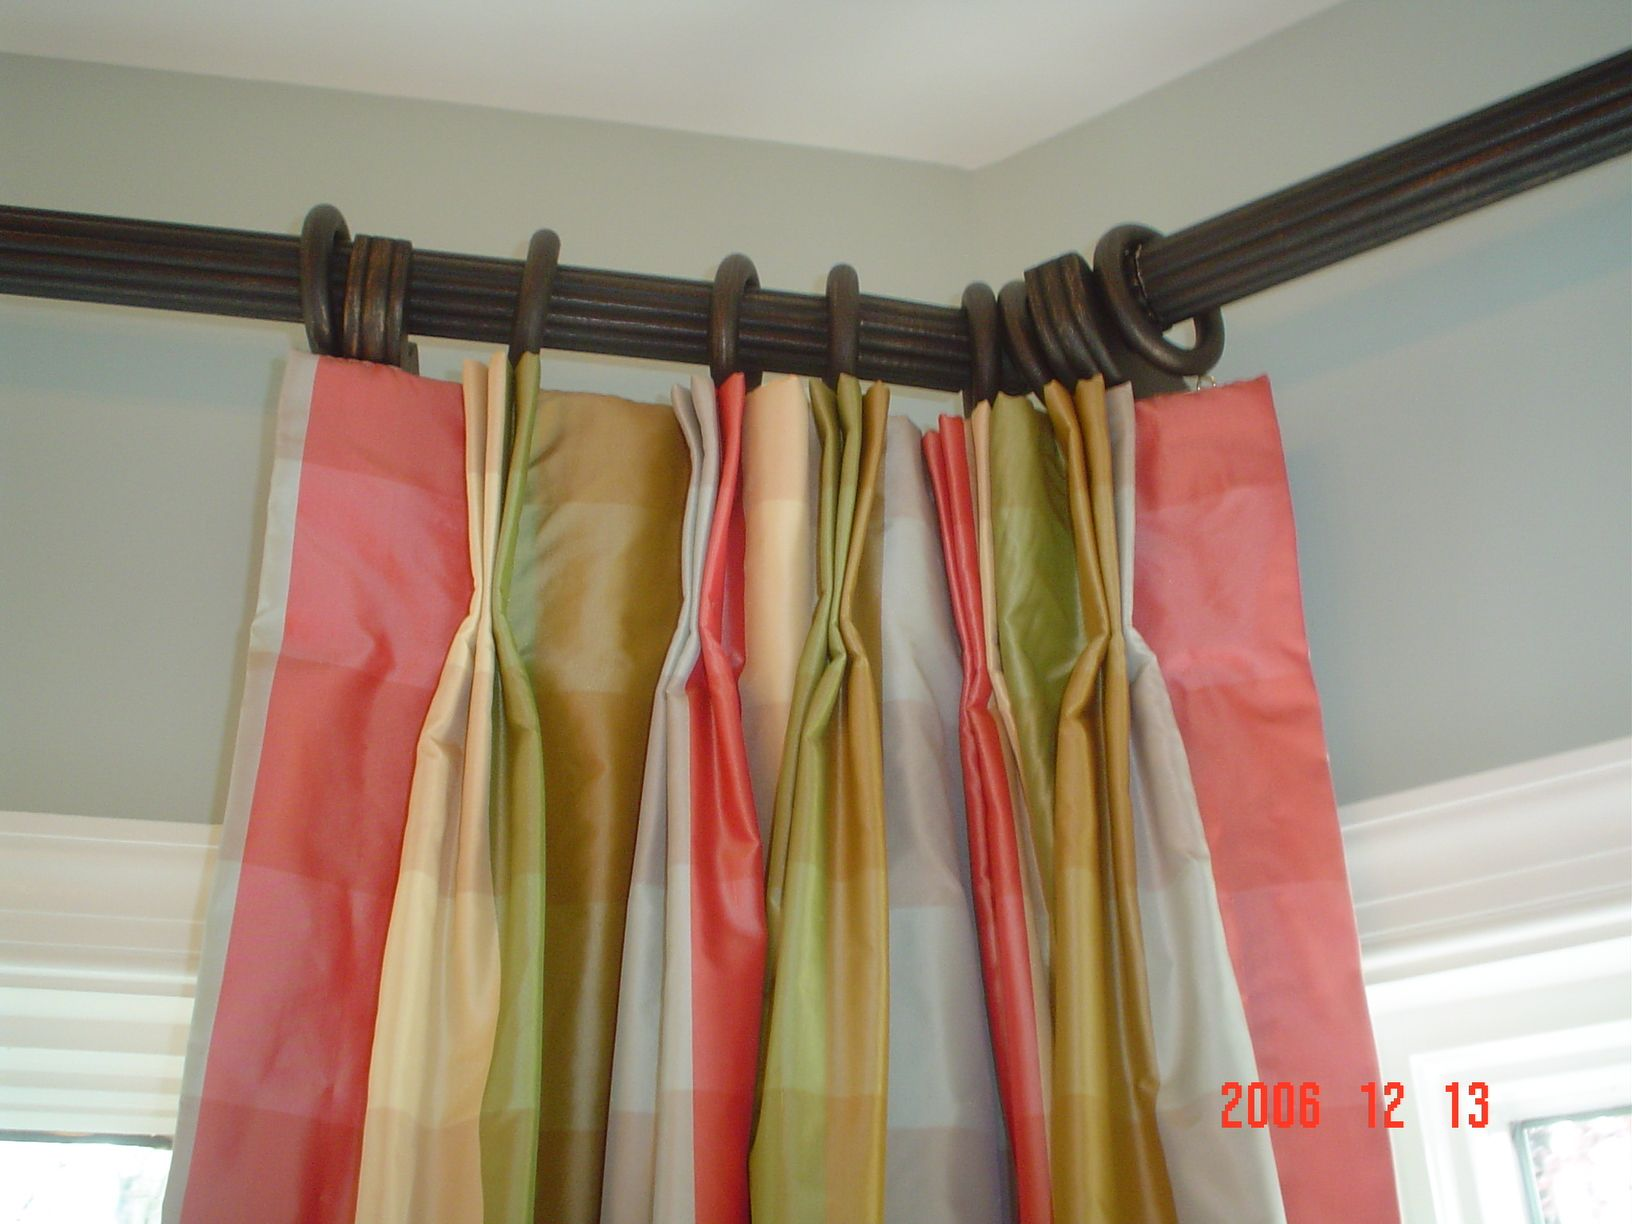 Drapery Rods | Drapery Hardware U2013 Elbows Connectors U2013 Discount Curtain Rods